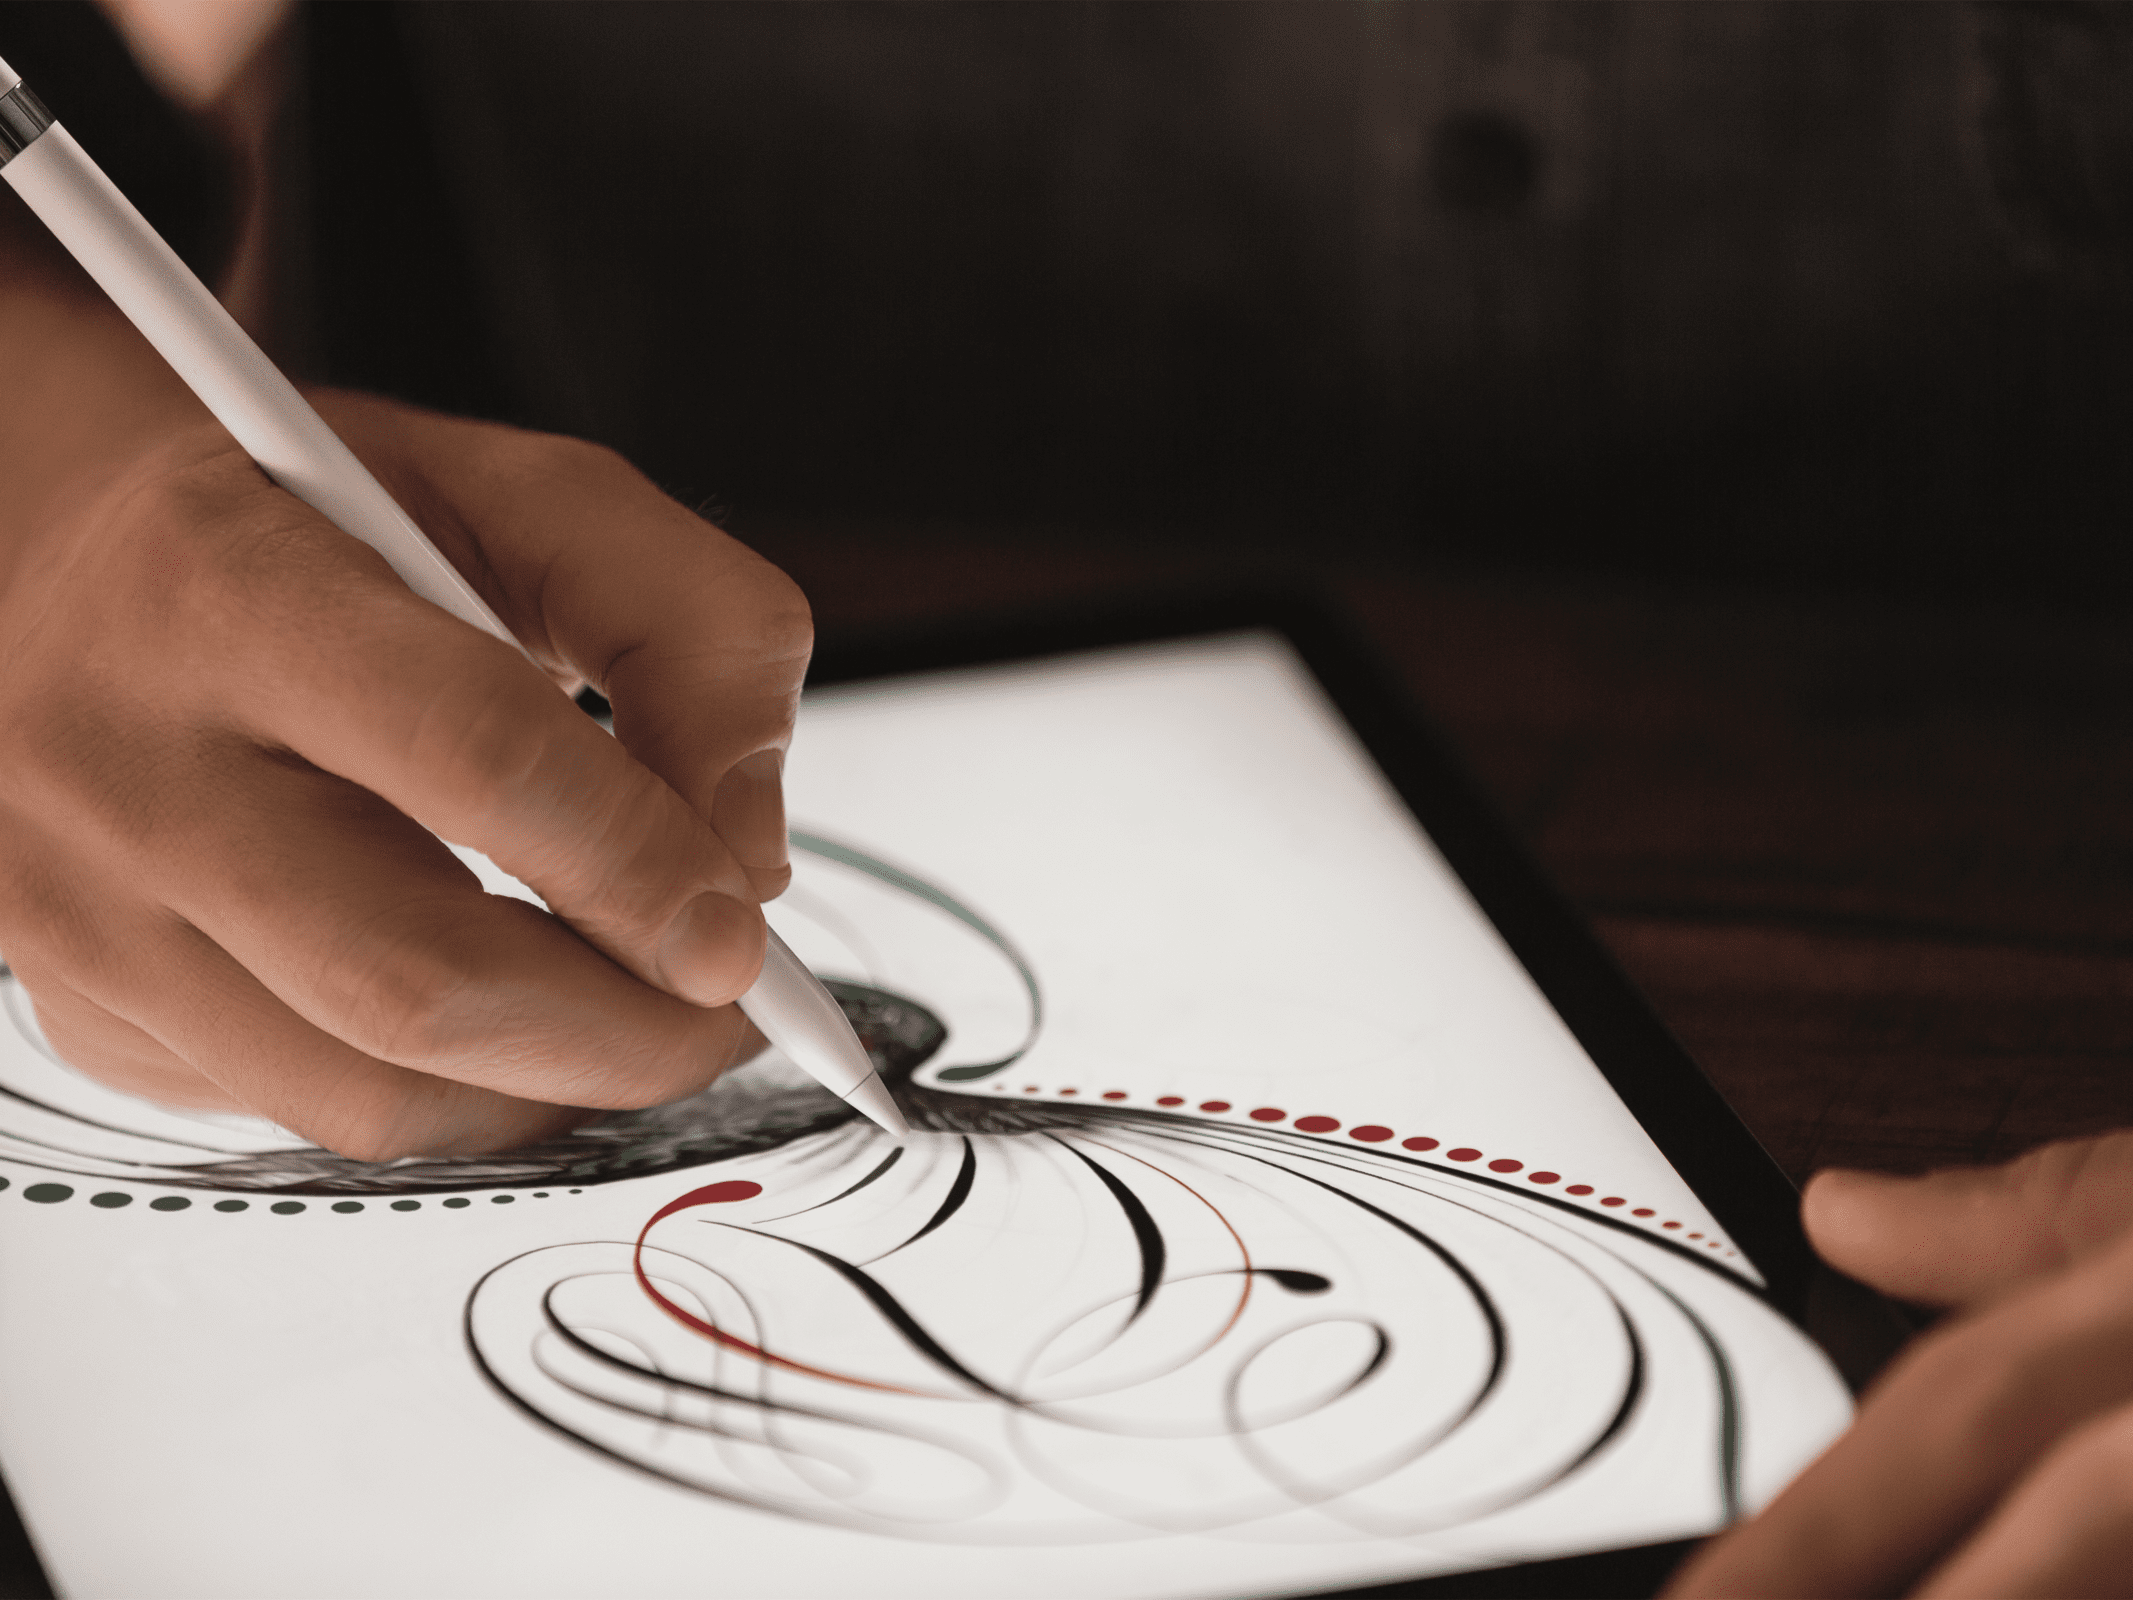 The 11 Best iPad Drawing Apps of 2019